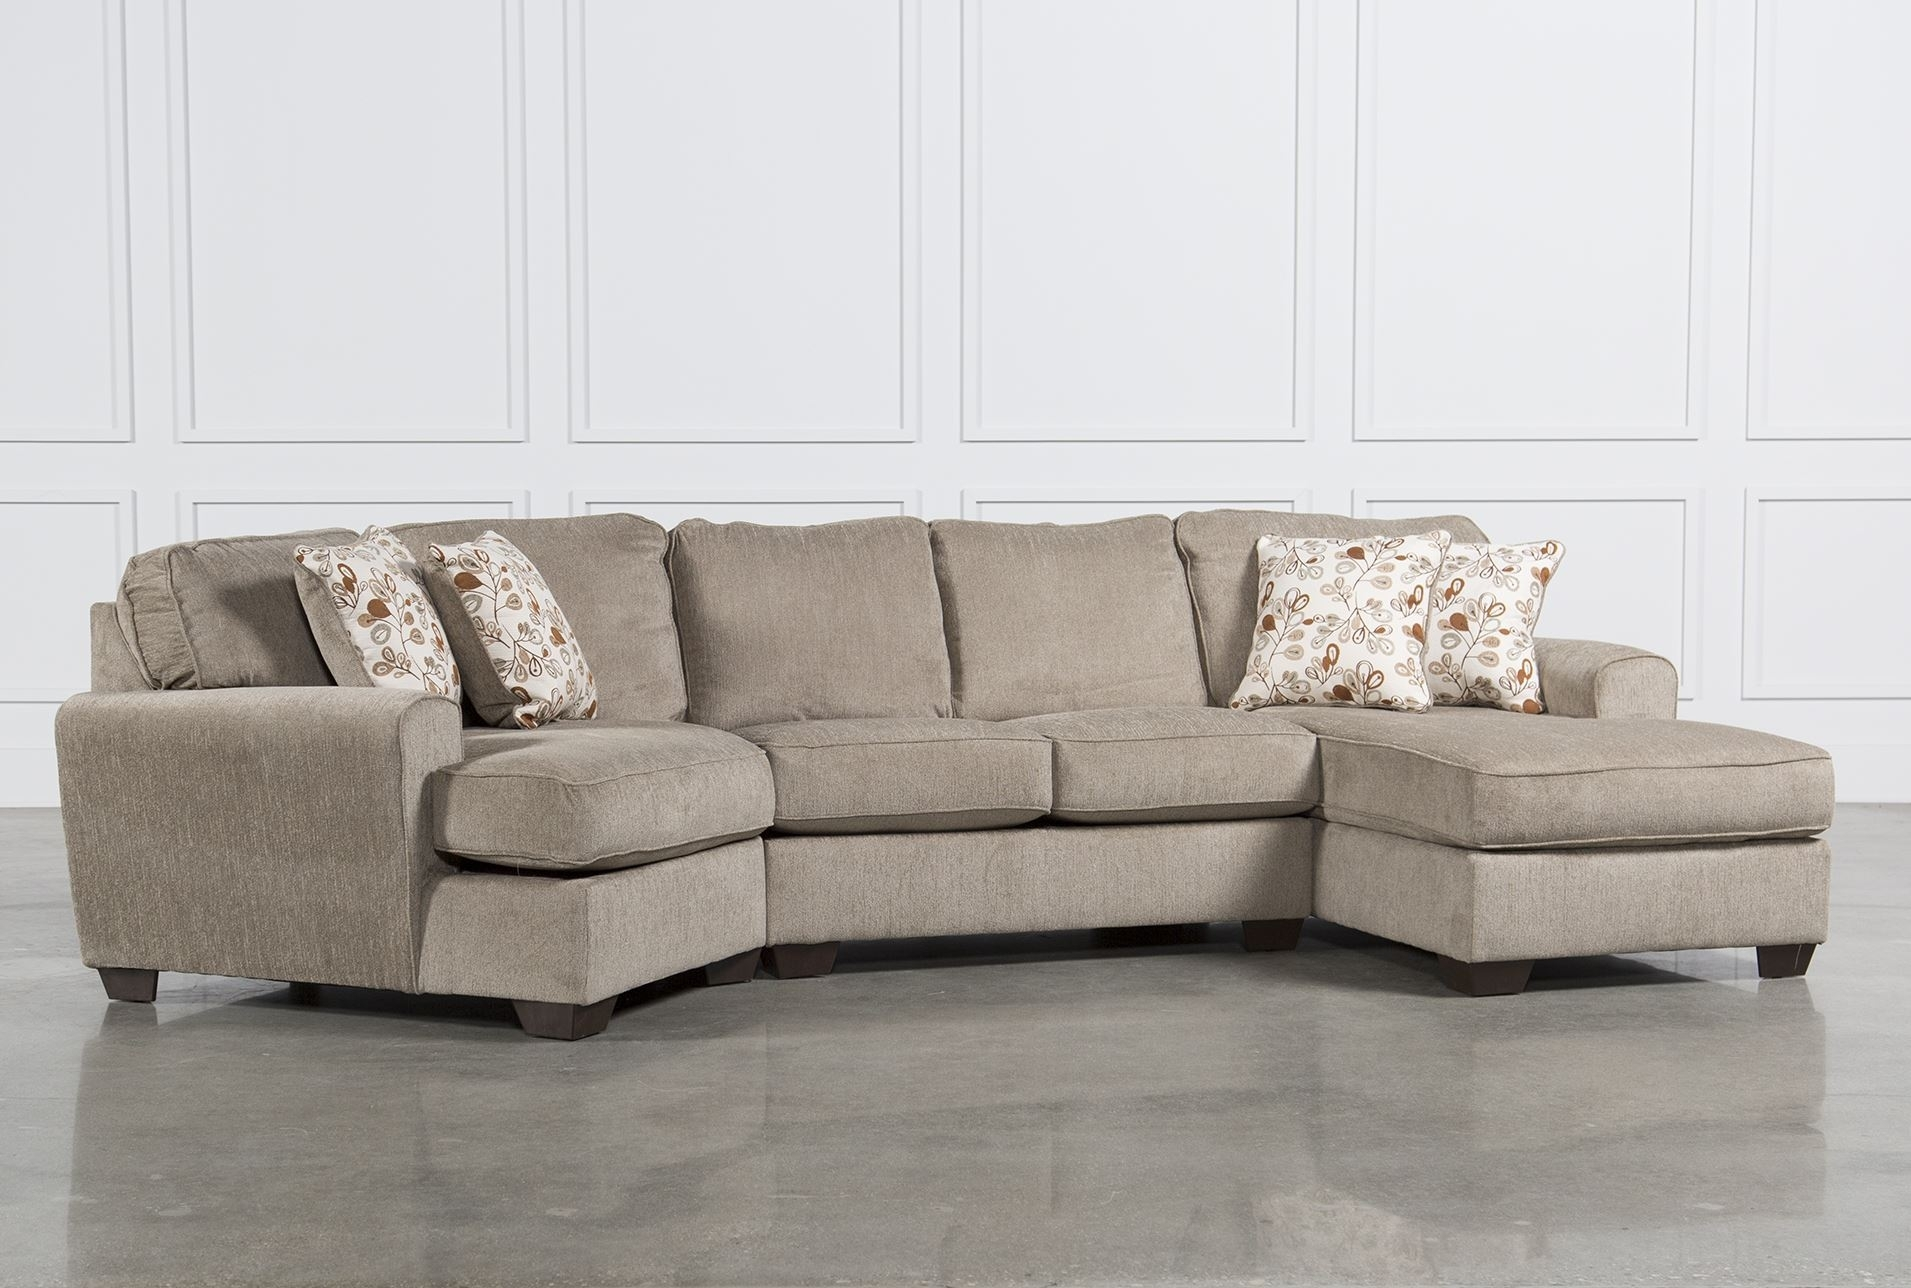 Furniture : Sectional Sofa Gta Sectional Couch El Paso Sectional Intended For El Paso Sectional Sofas (View 3 of 10)